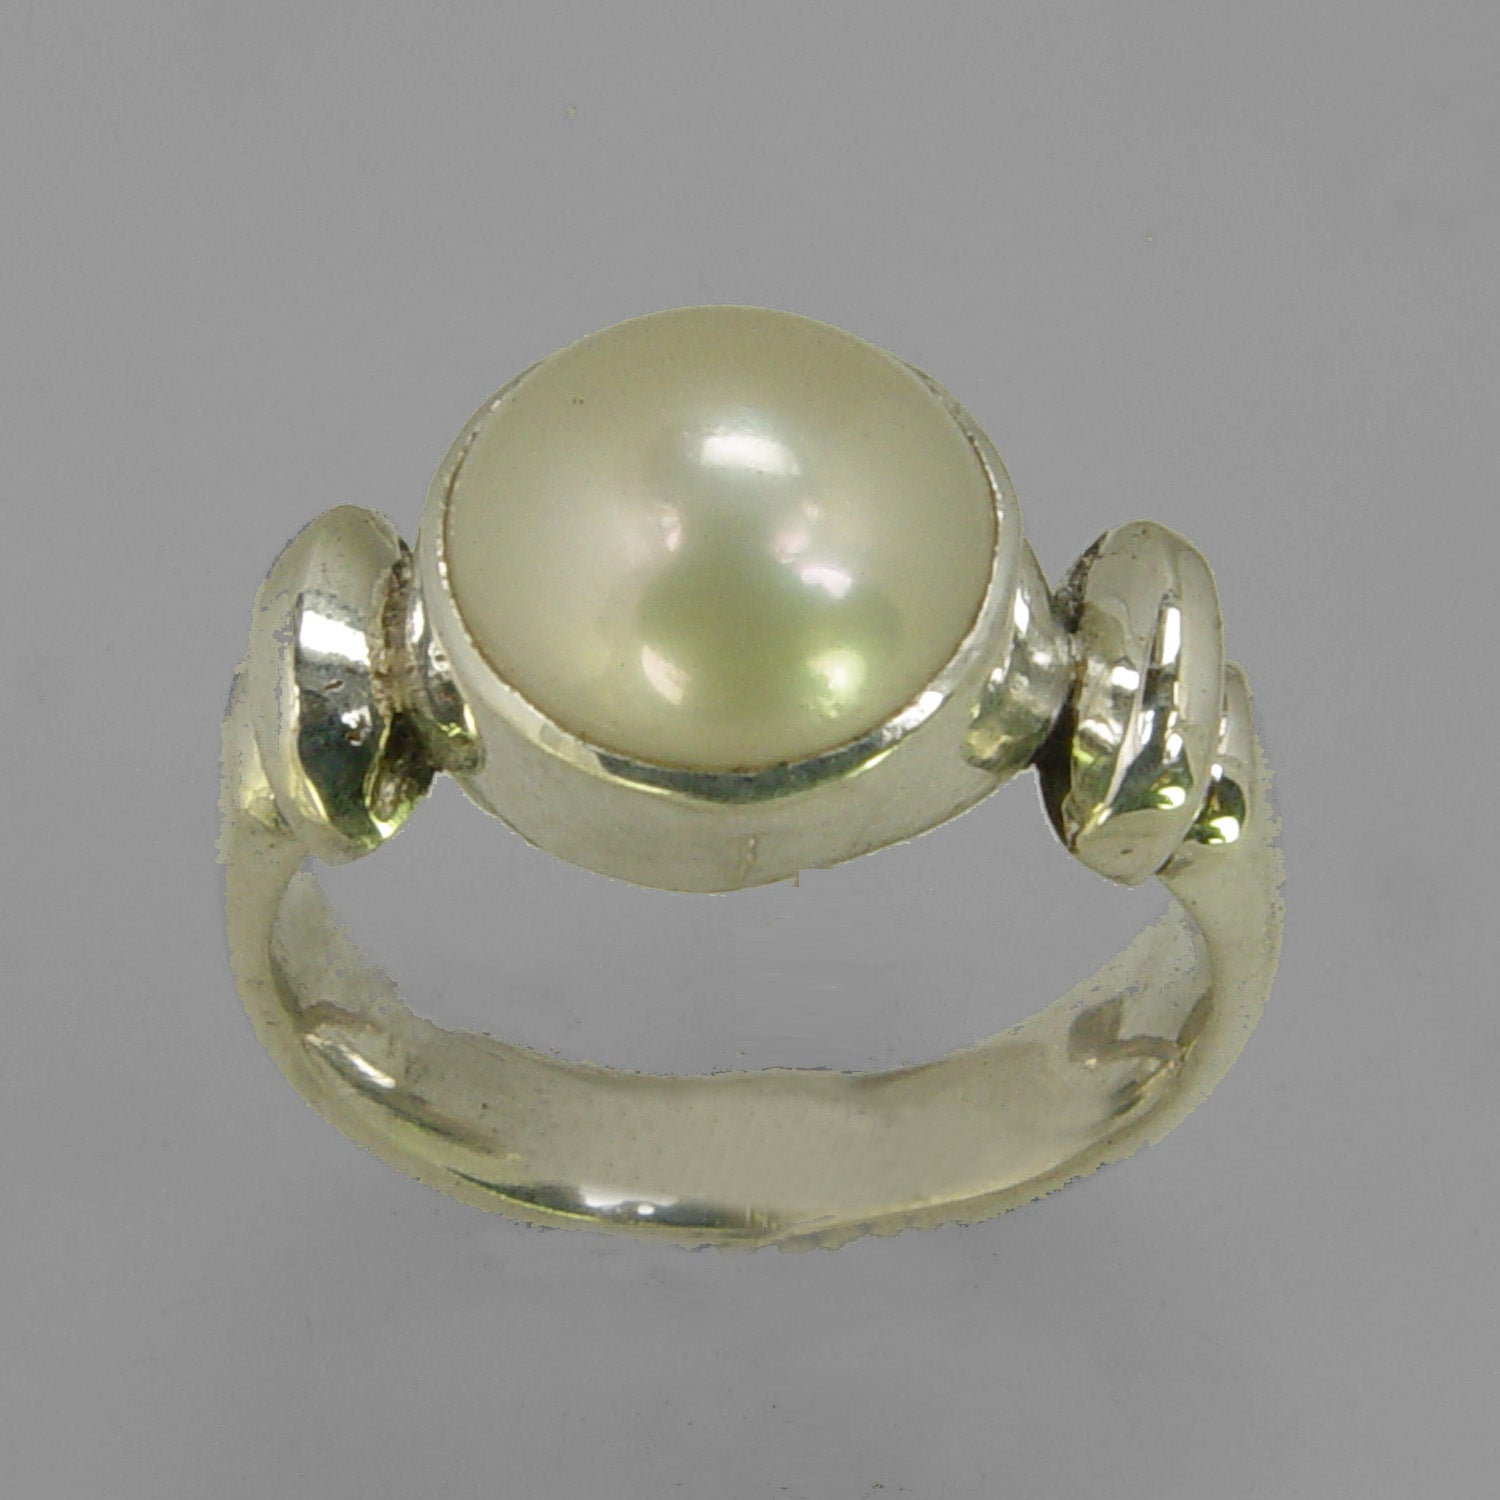 Pearl 6 ct Freshwater Pearl Bezel Set Shoulder Shank Sterling Silver Ring, Size 7